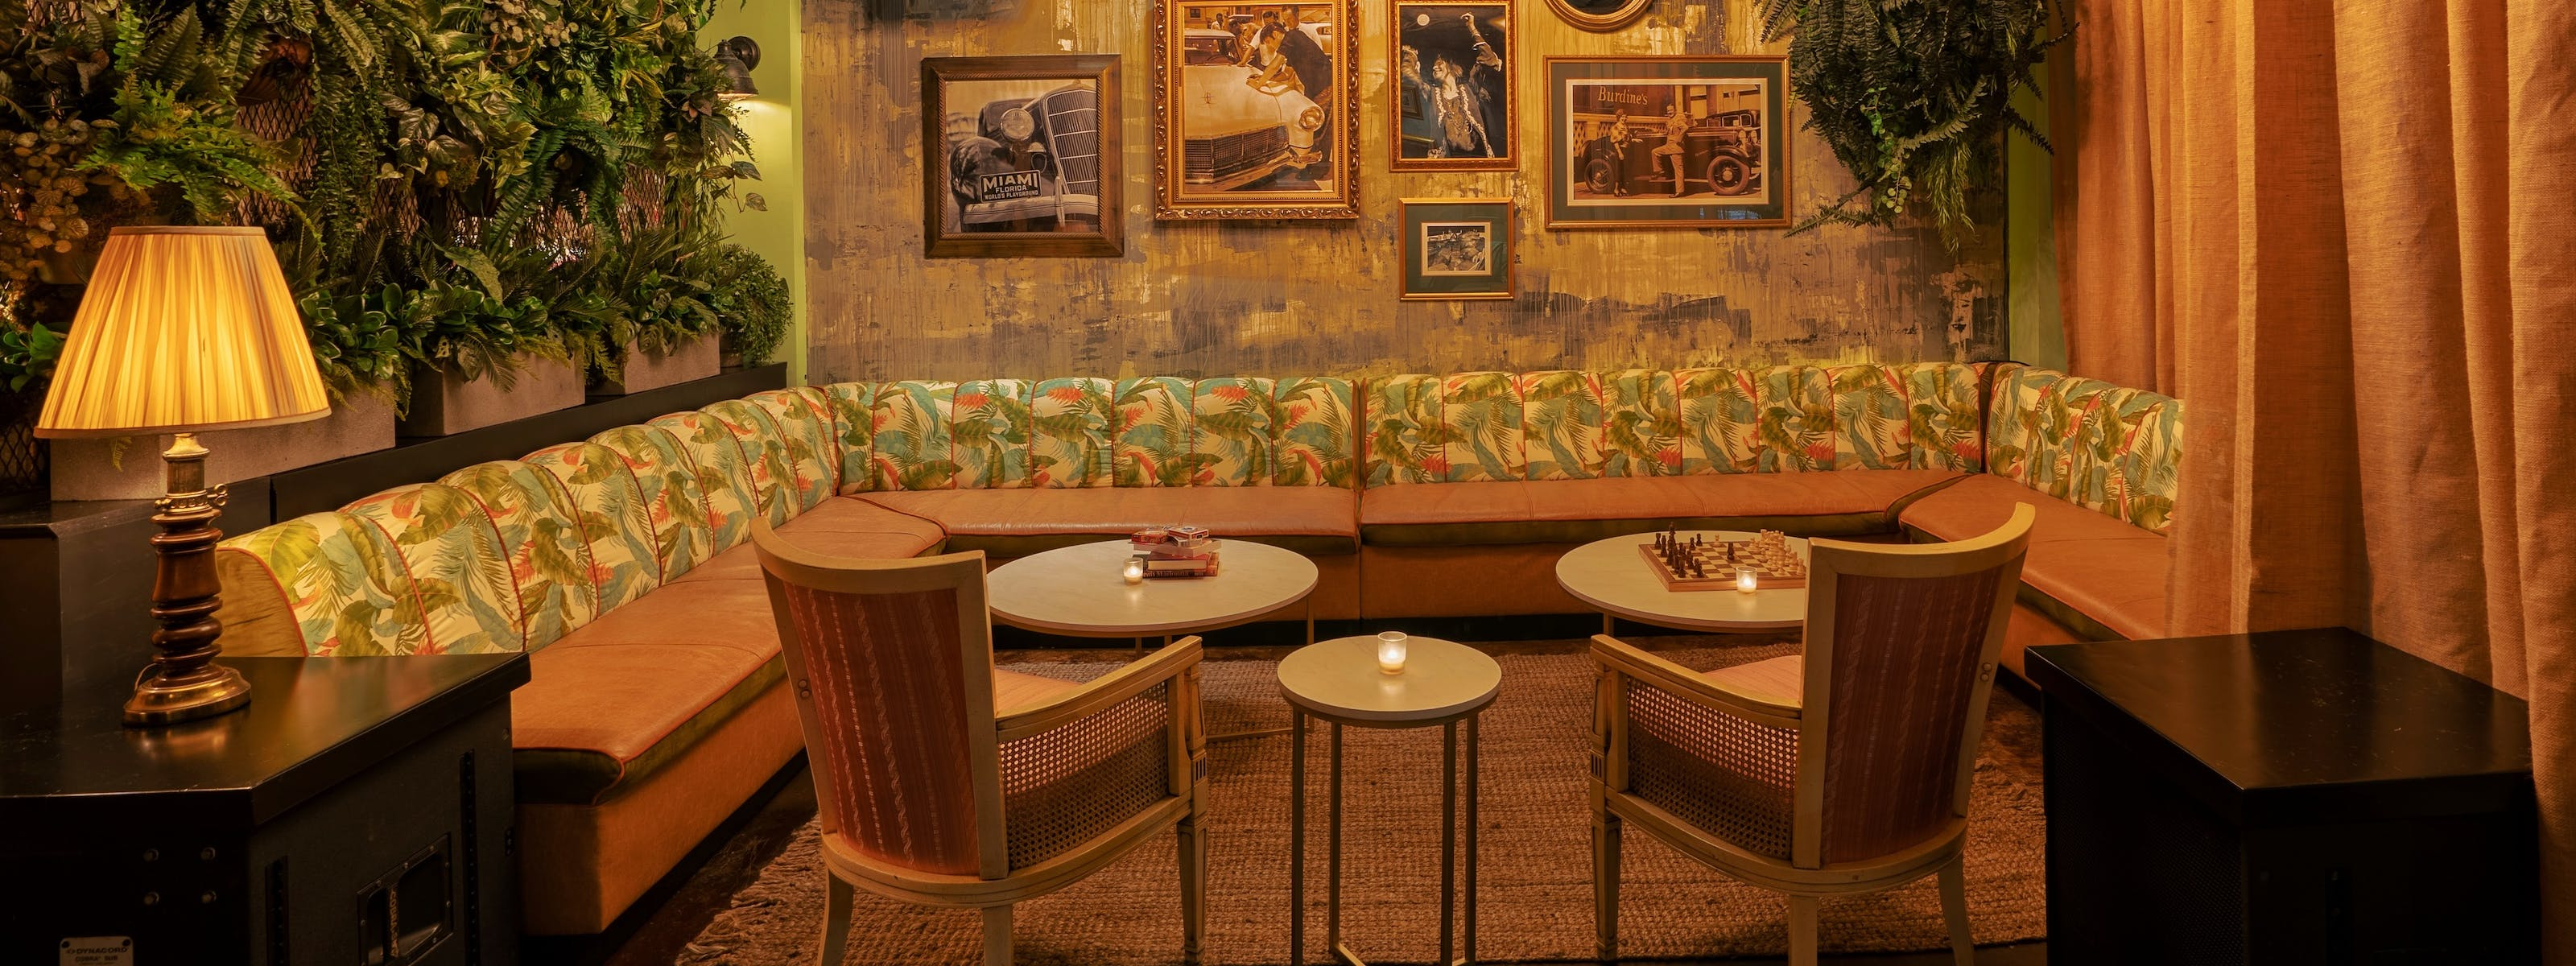 The Best Bars For A First Date In Miami - Miami - The Infatuation